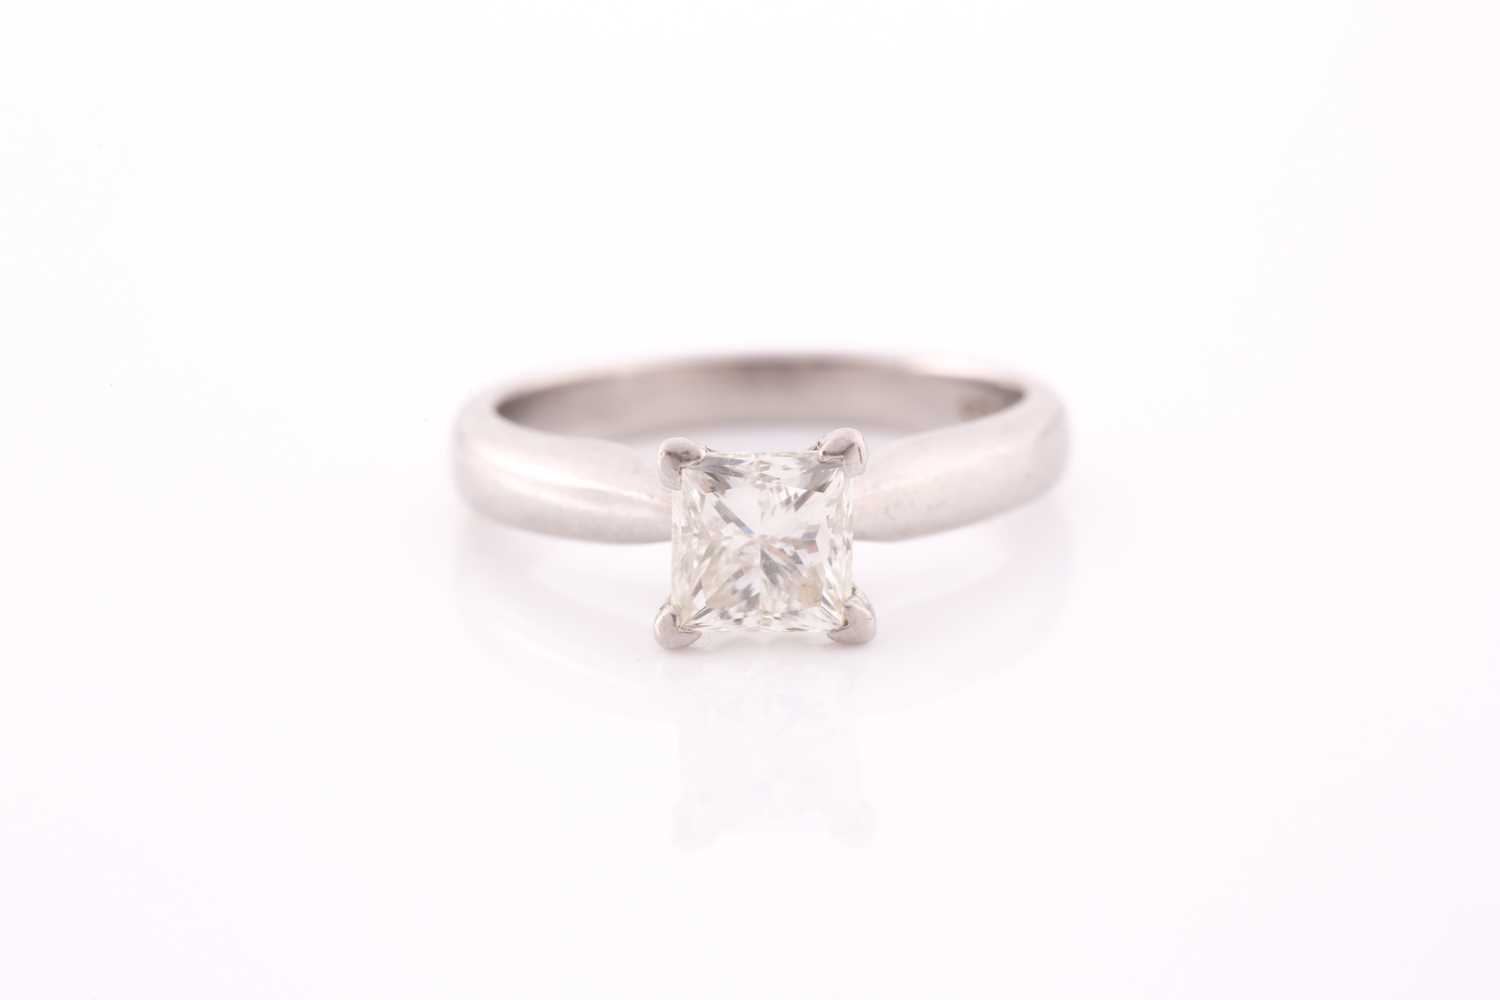 A platinum and diamond ring, set with a princess-cut diamond of approximately 0.80 carats,